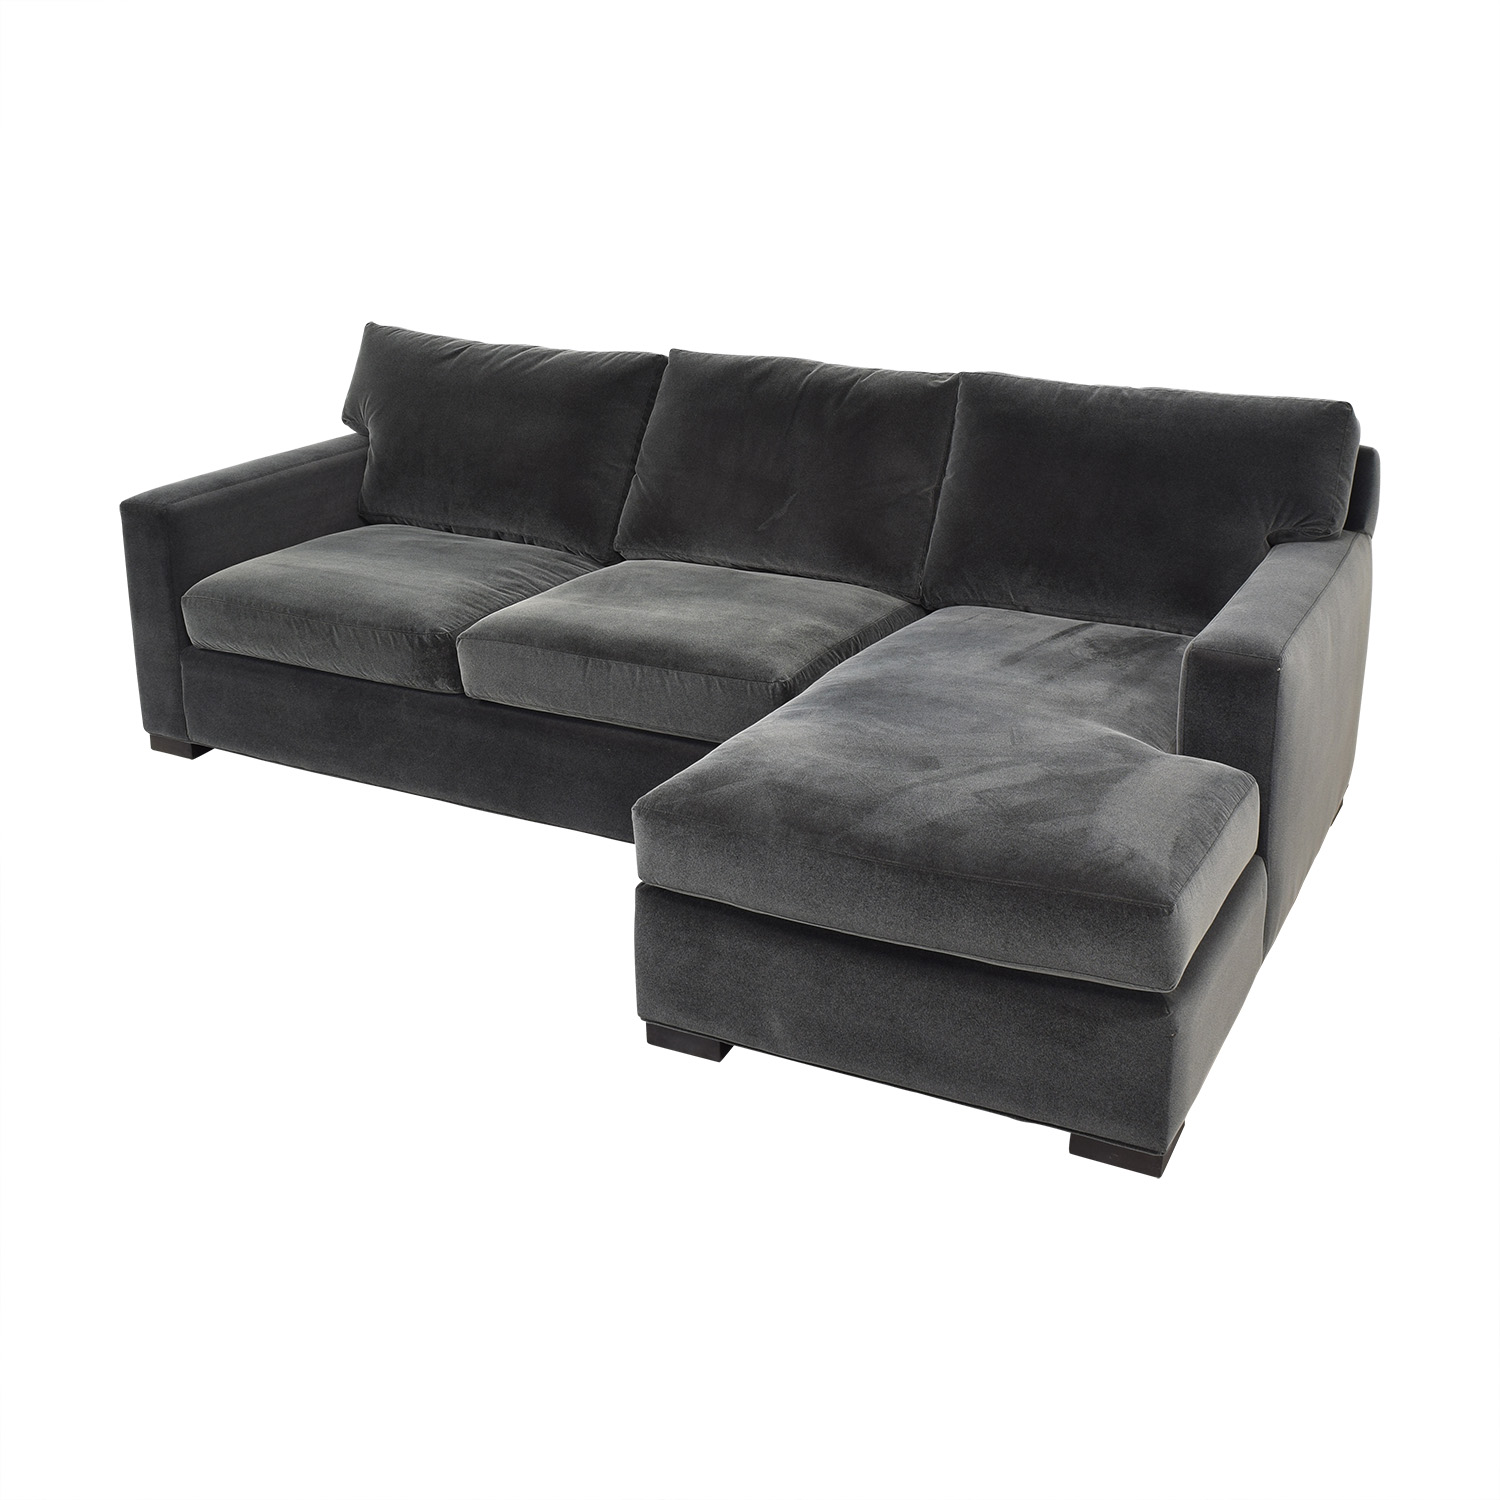 Crate & Barrel Crate & Barrel Axis Chaise Sectional Sofa used